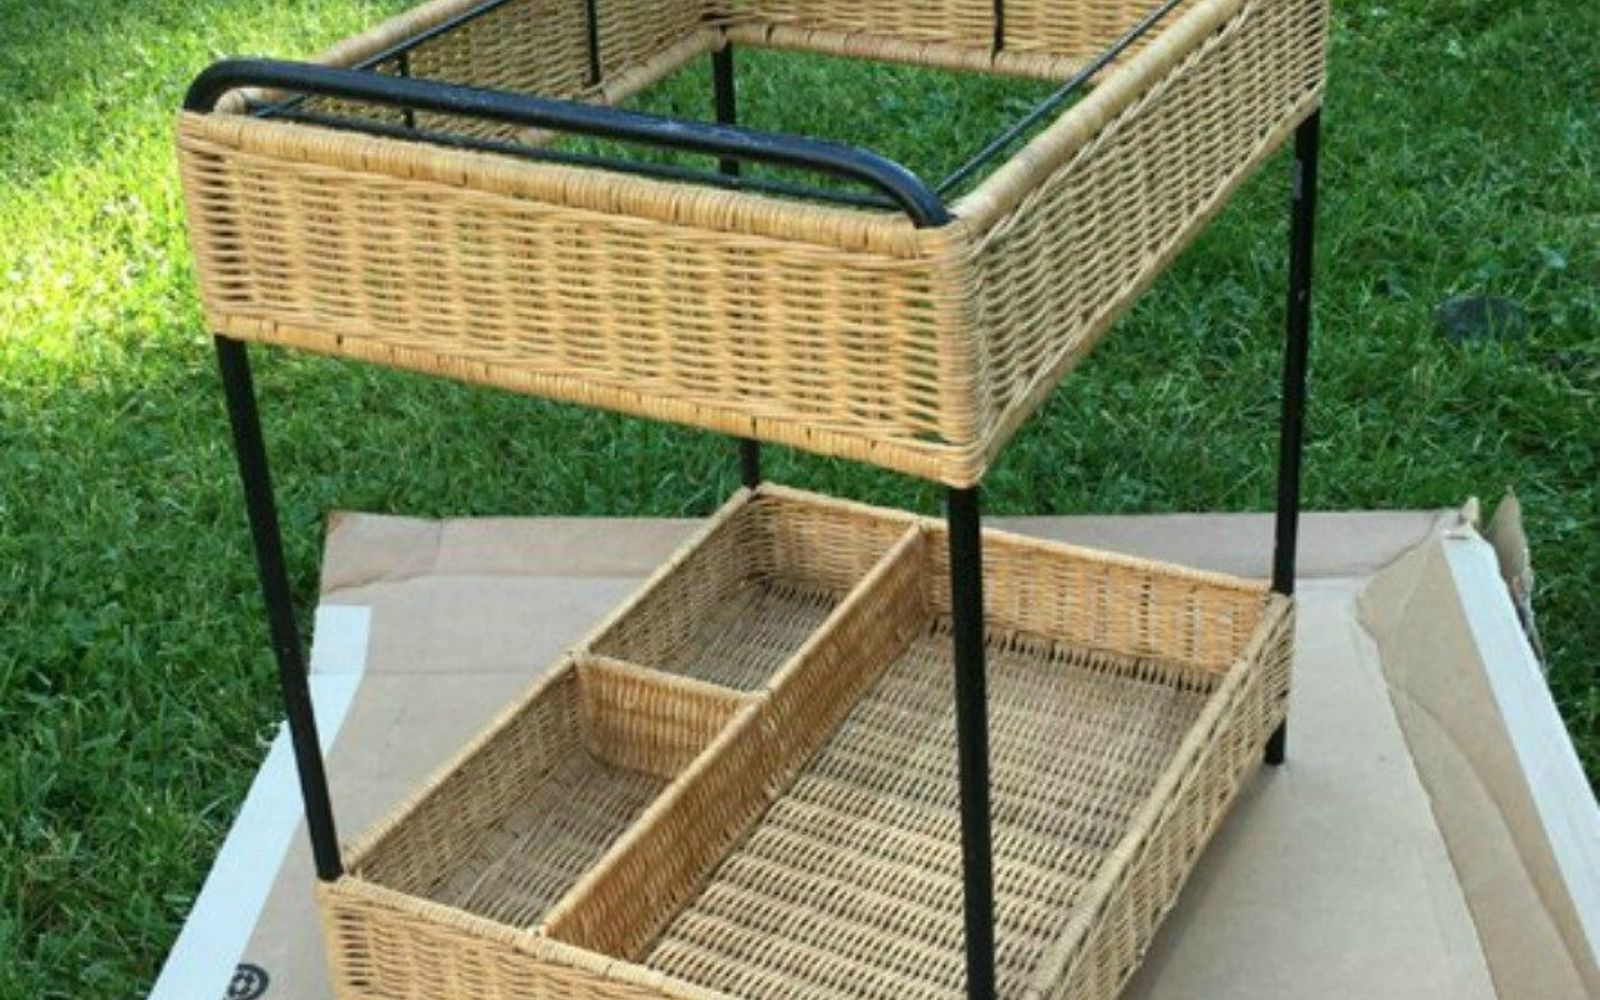 s make wicker trendy again with these brilliant ideas, painted furniture, Before An ugly old wicker cart